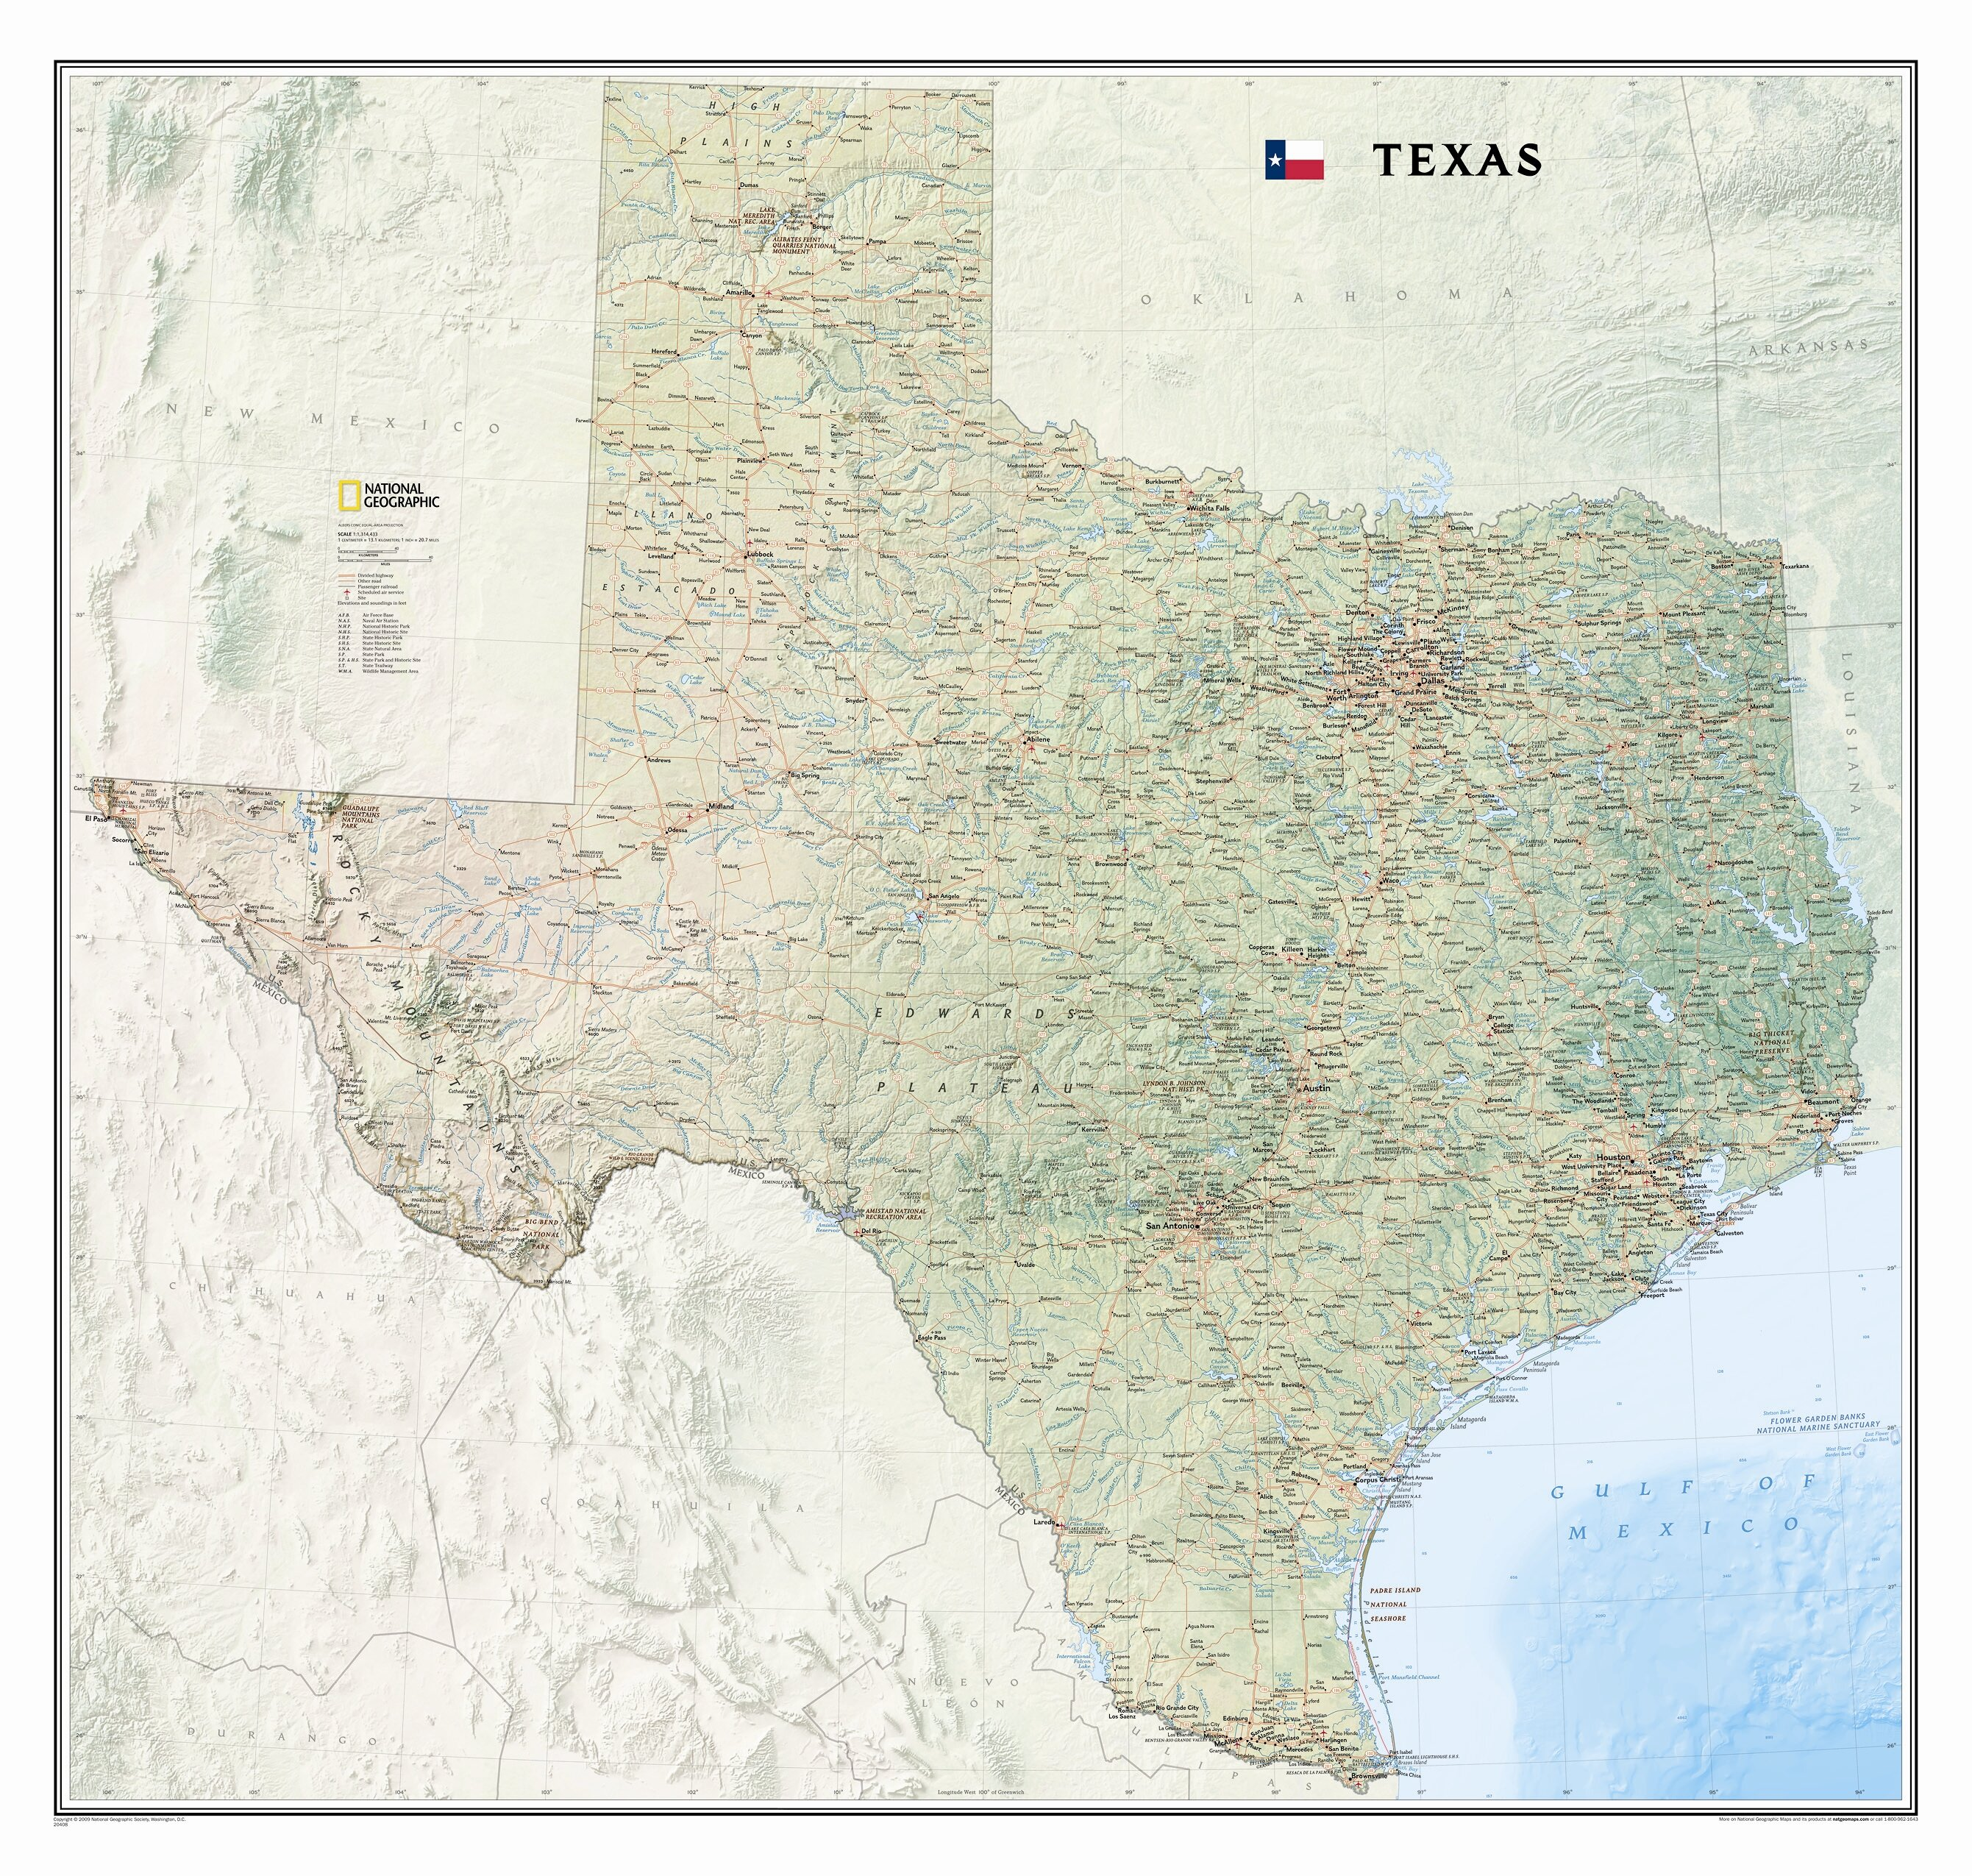 A Map Of The State Of Texas.Texas State Wall Map